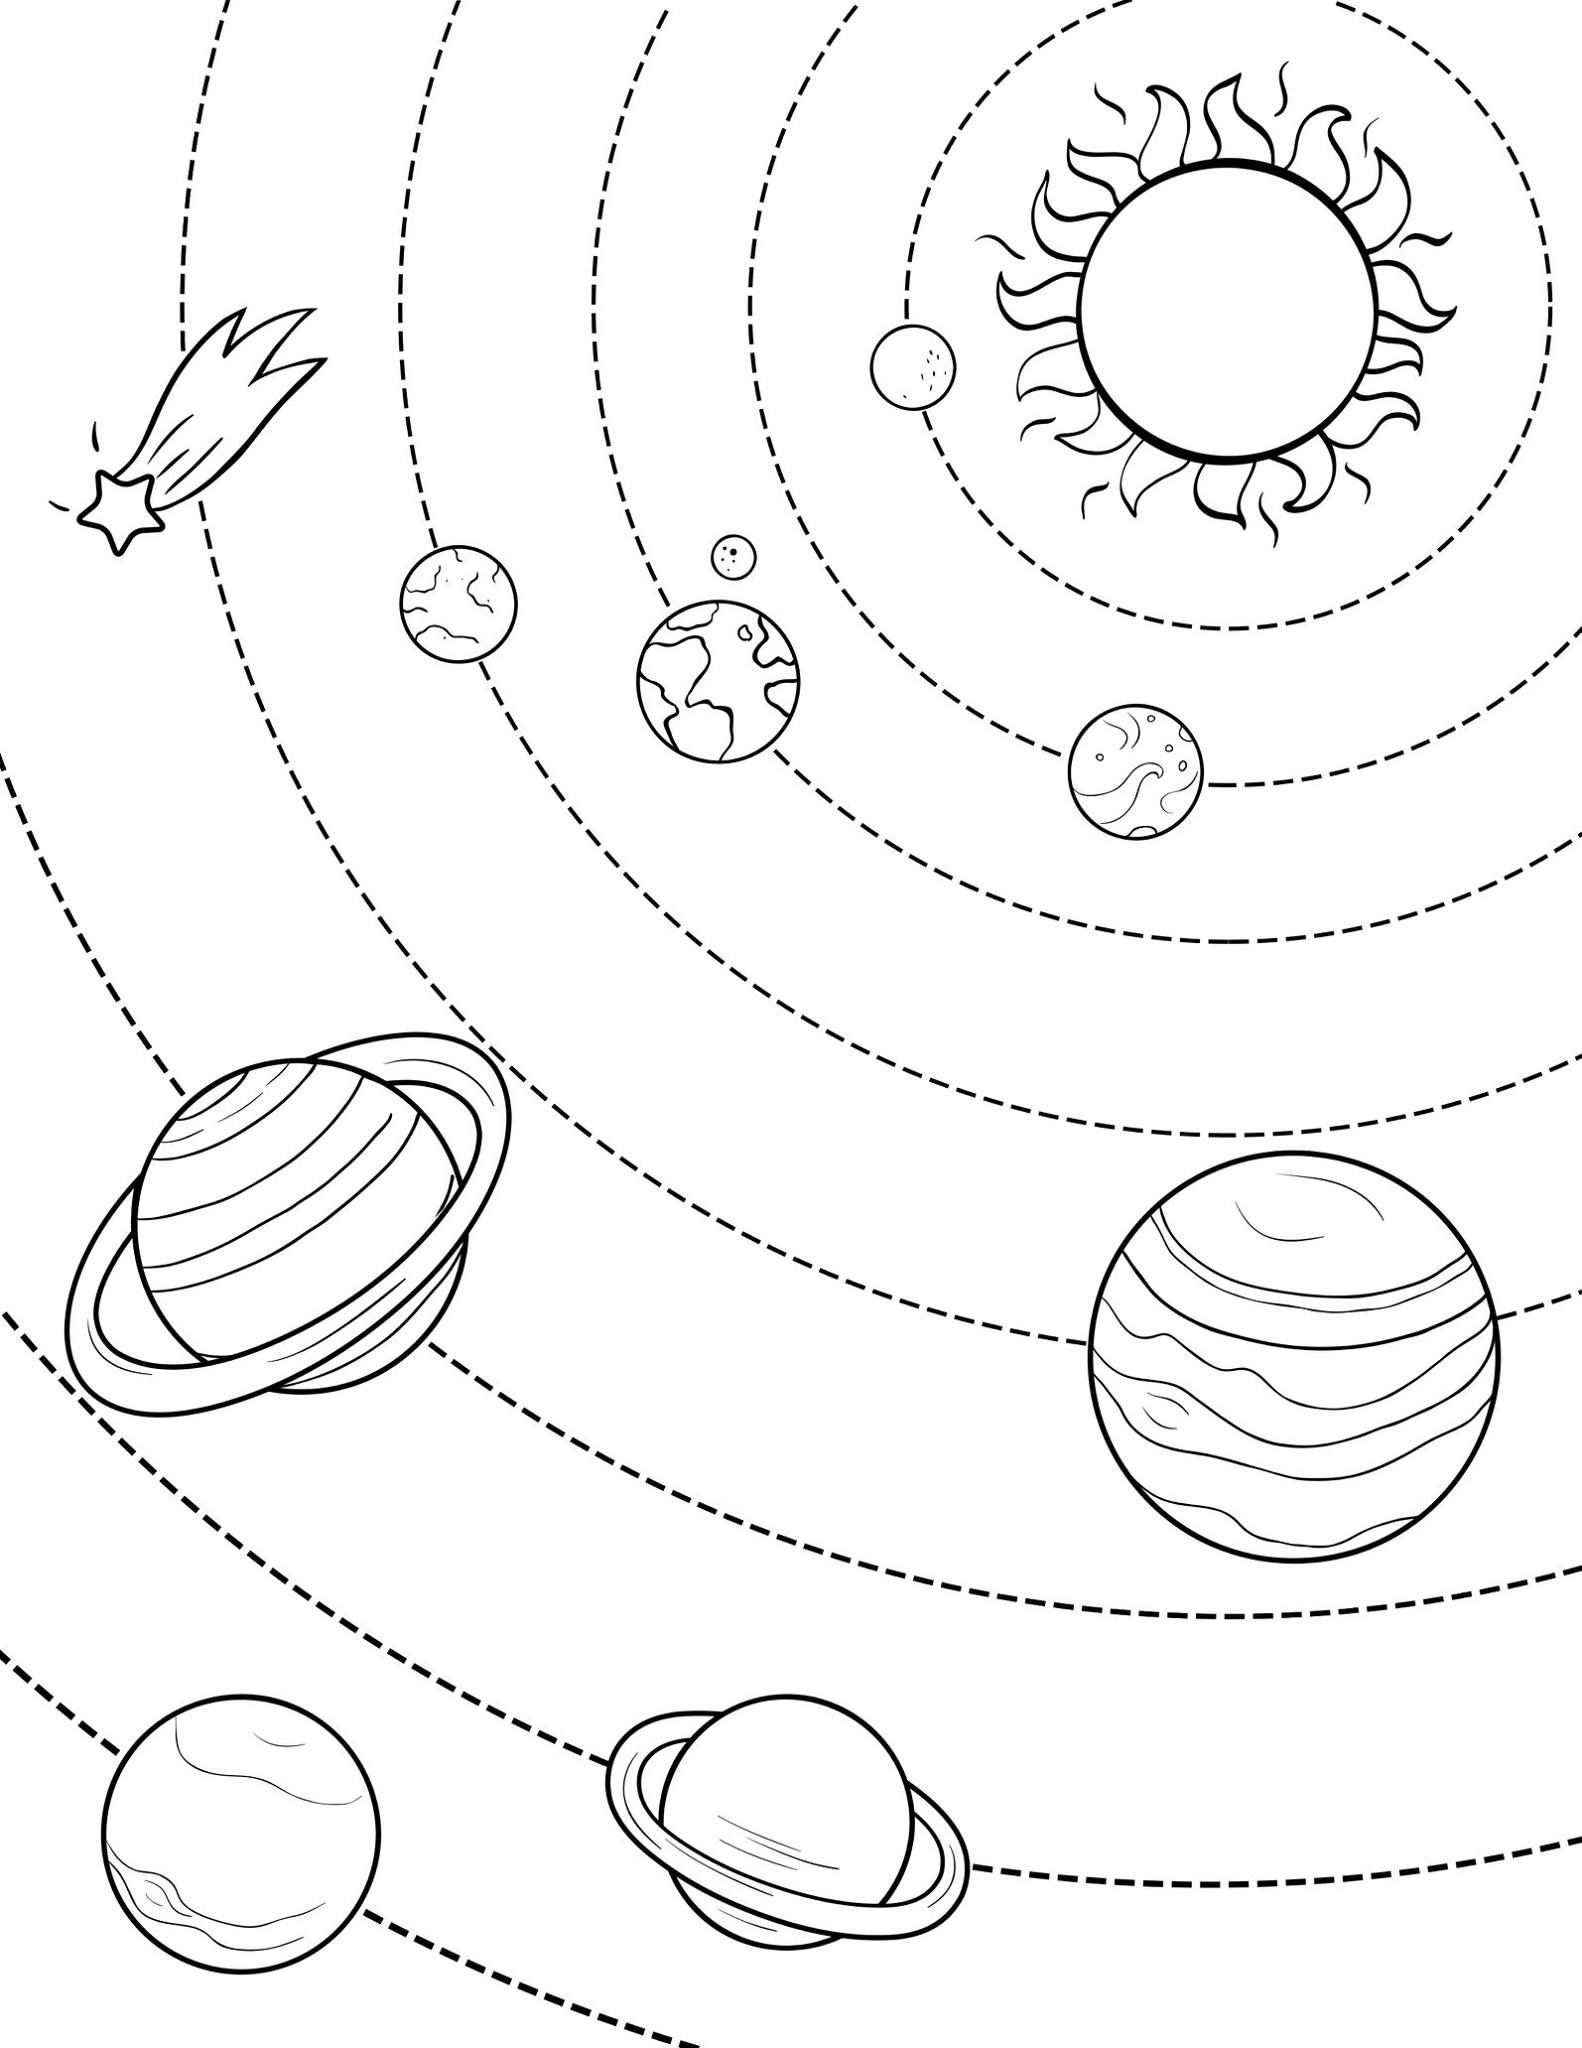 coloring planets solar system drawing solar system line drawing at getdrawings free download drawing coloring system solar planets